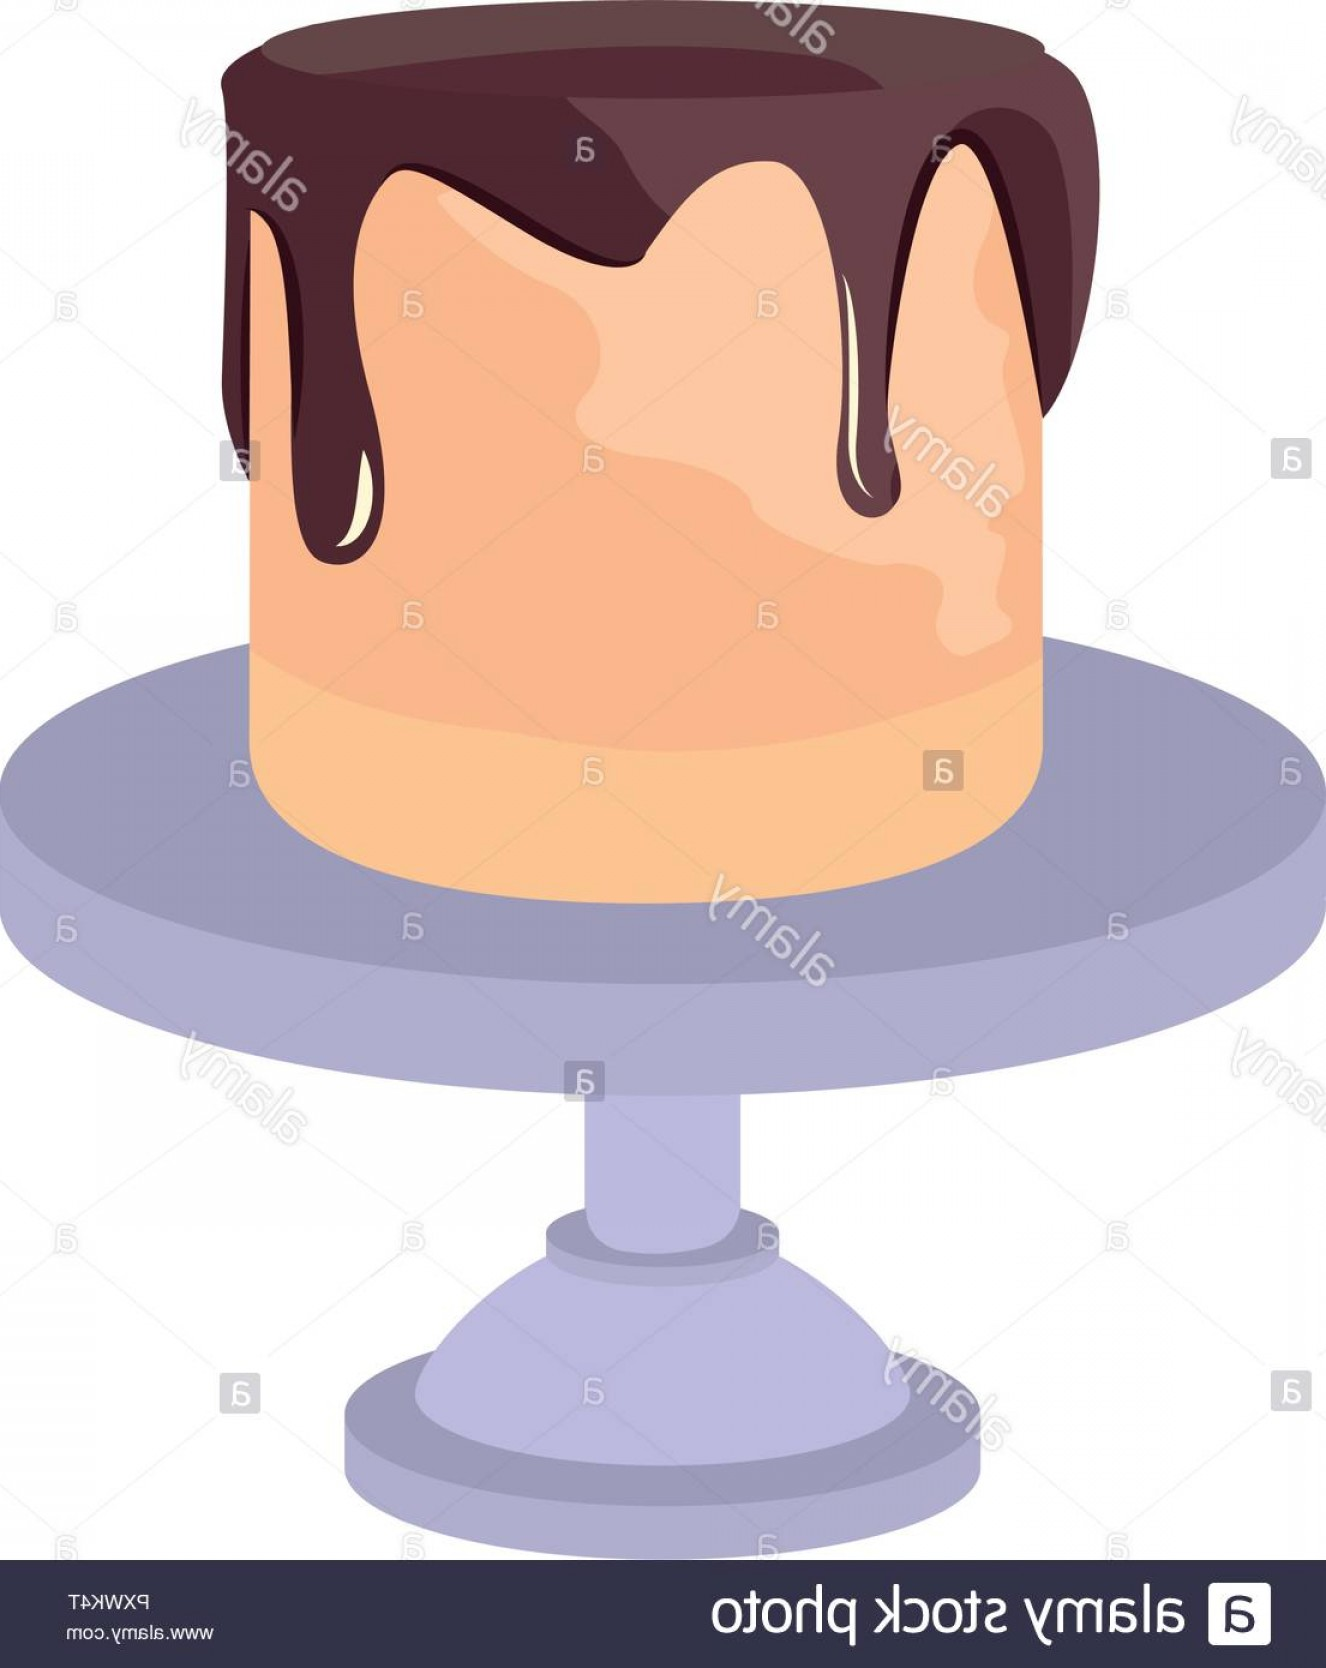 Cake Stand Vector: Birthday Cake Stand On White Background Vector Illustration Image